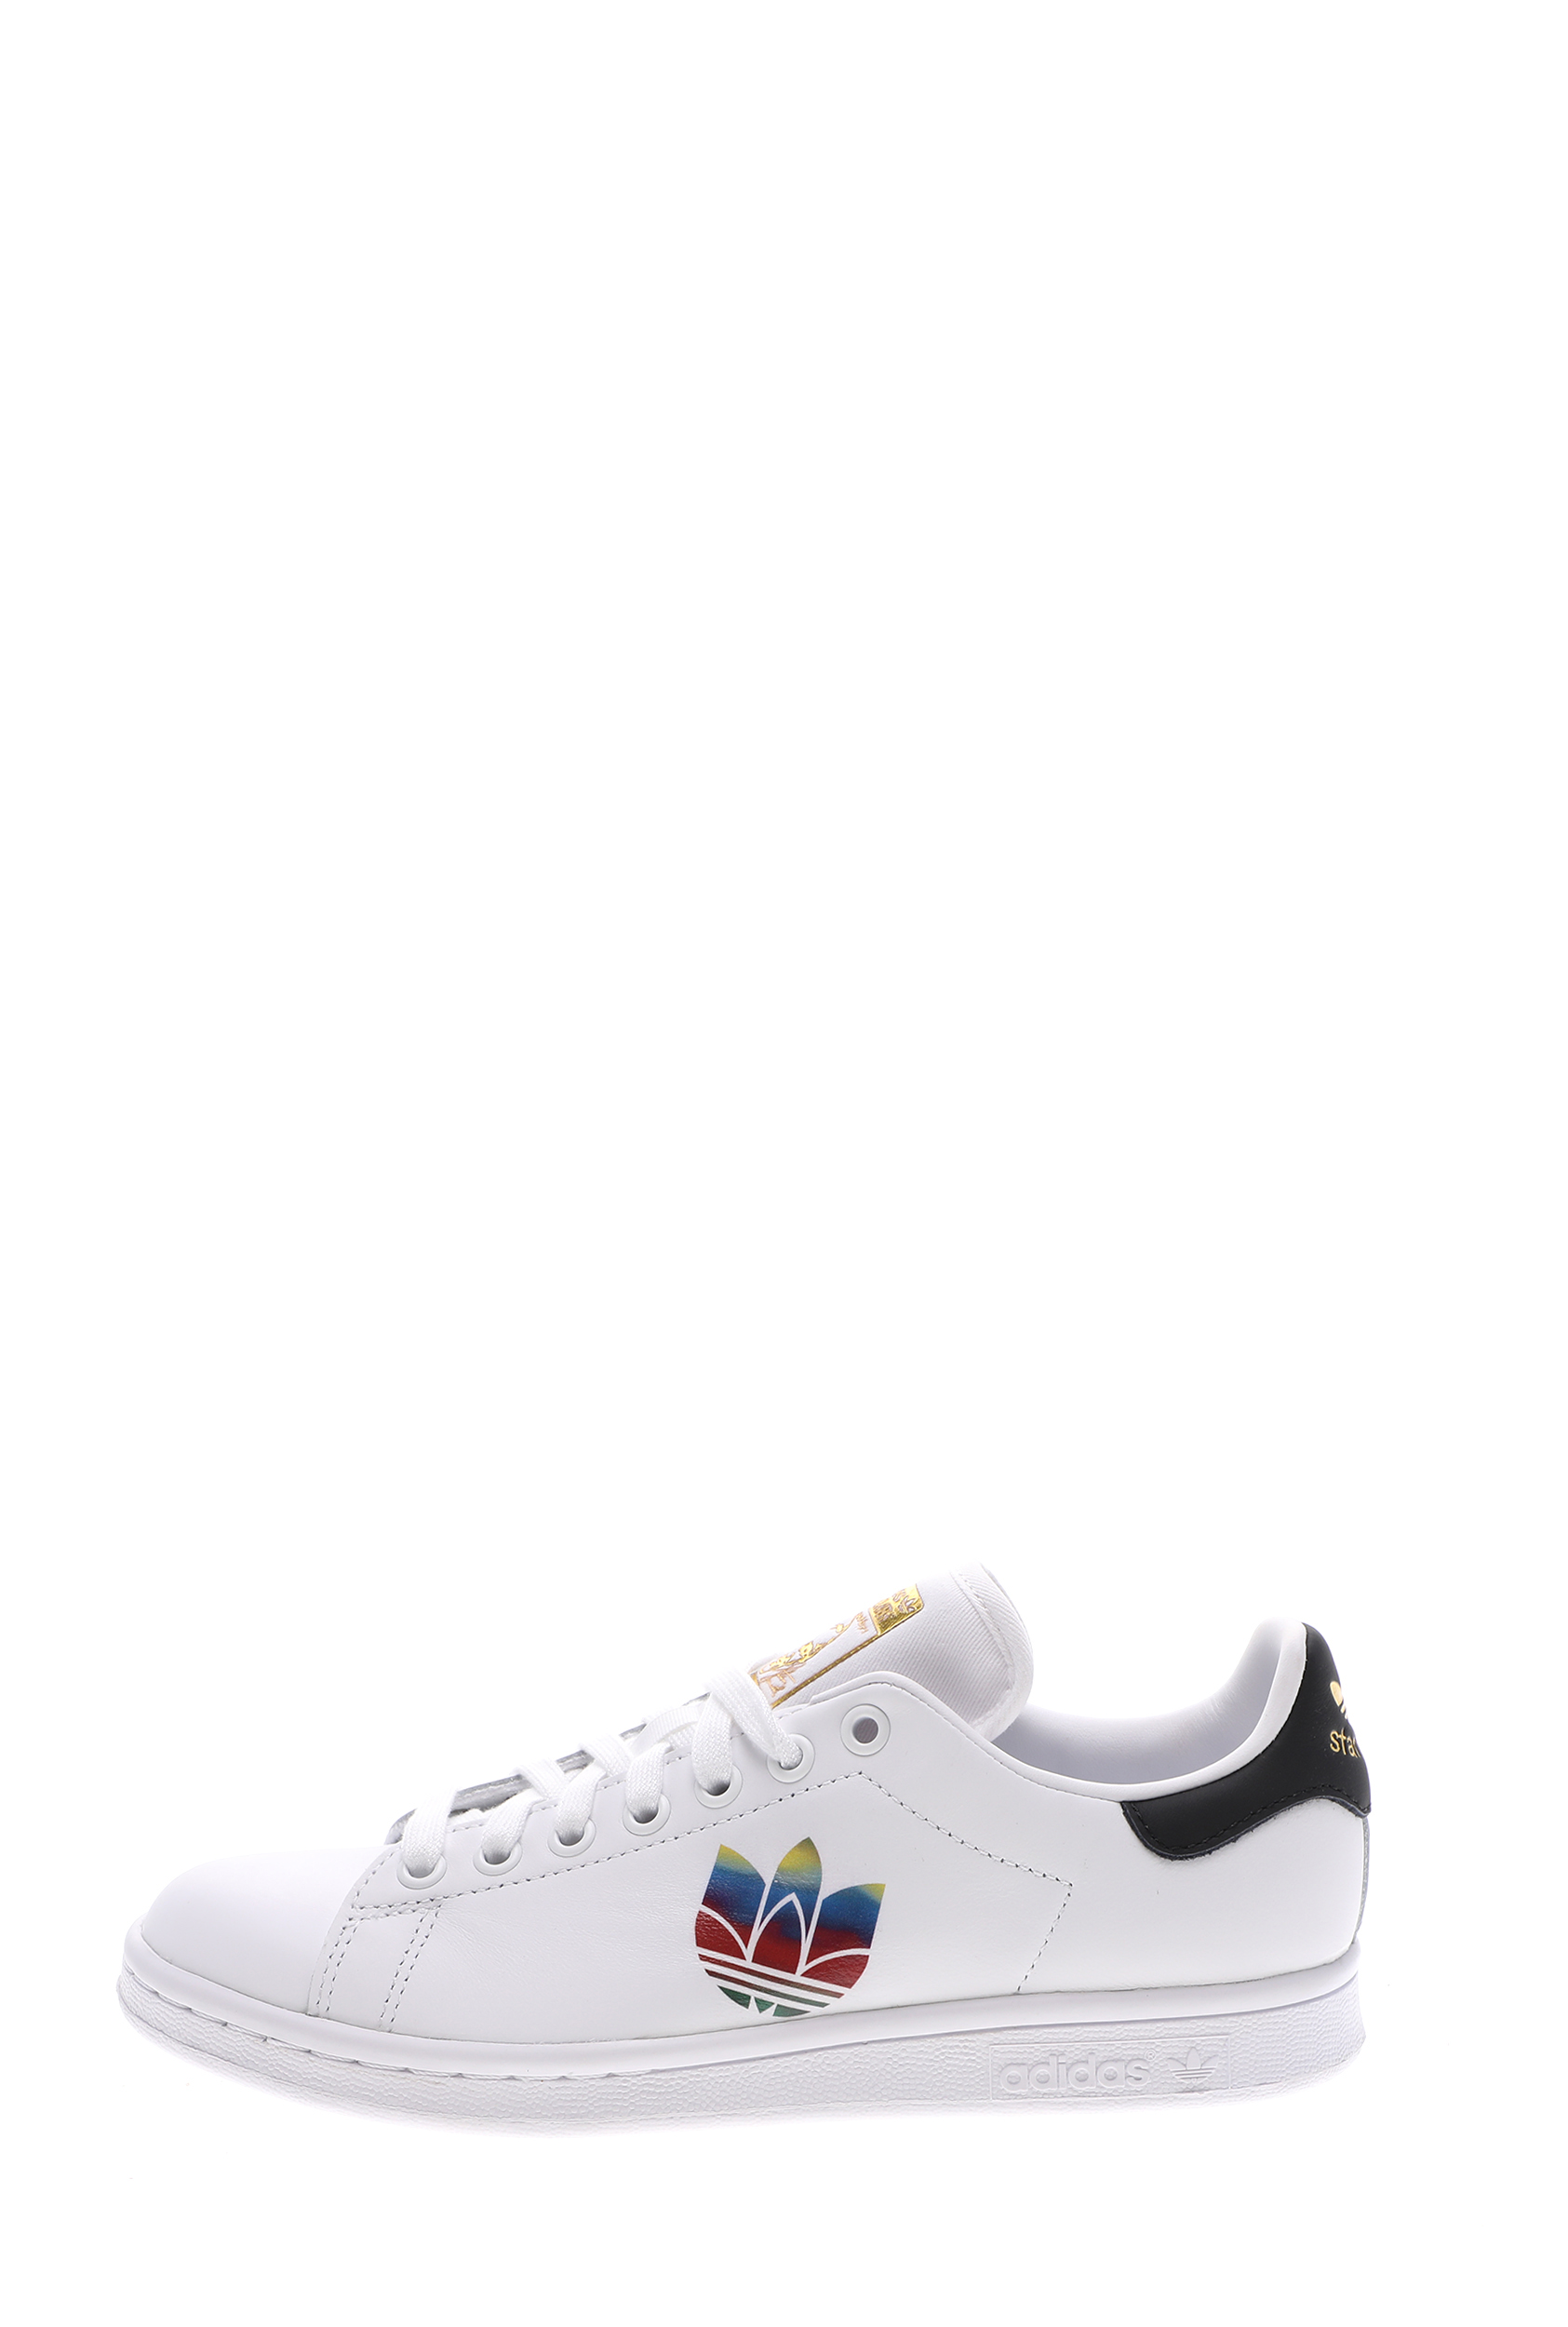 adidas Originals – Γυναικεία sneakers adidas Originals FW2443 STAN SMITH W λευκά